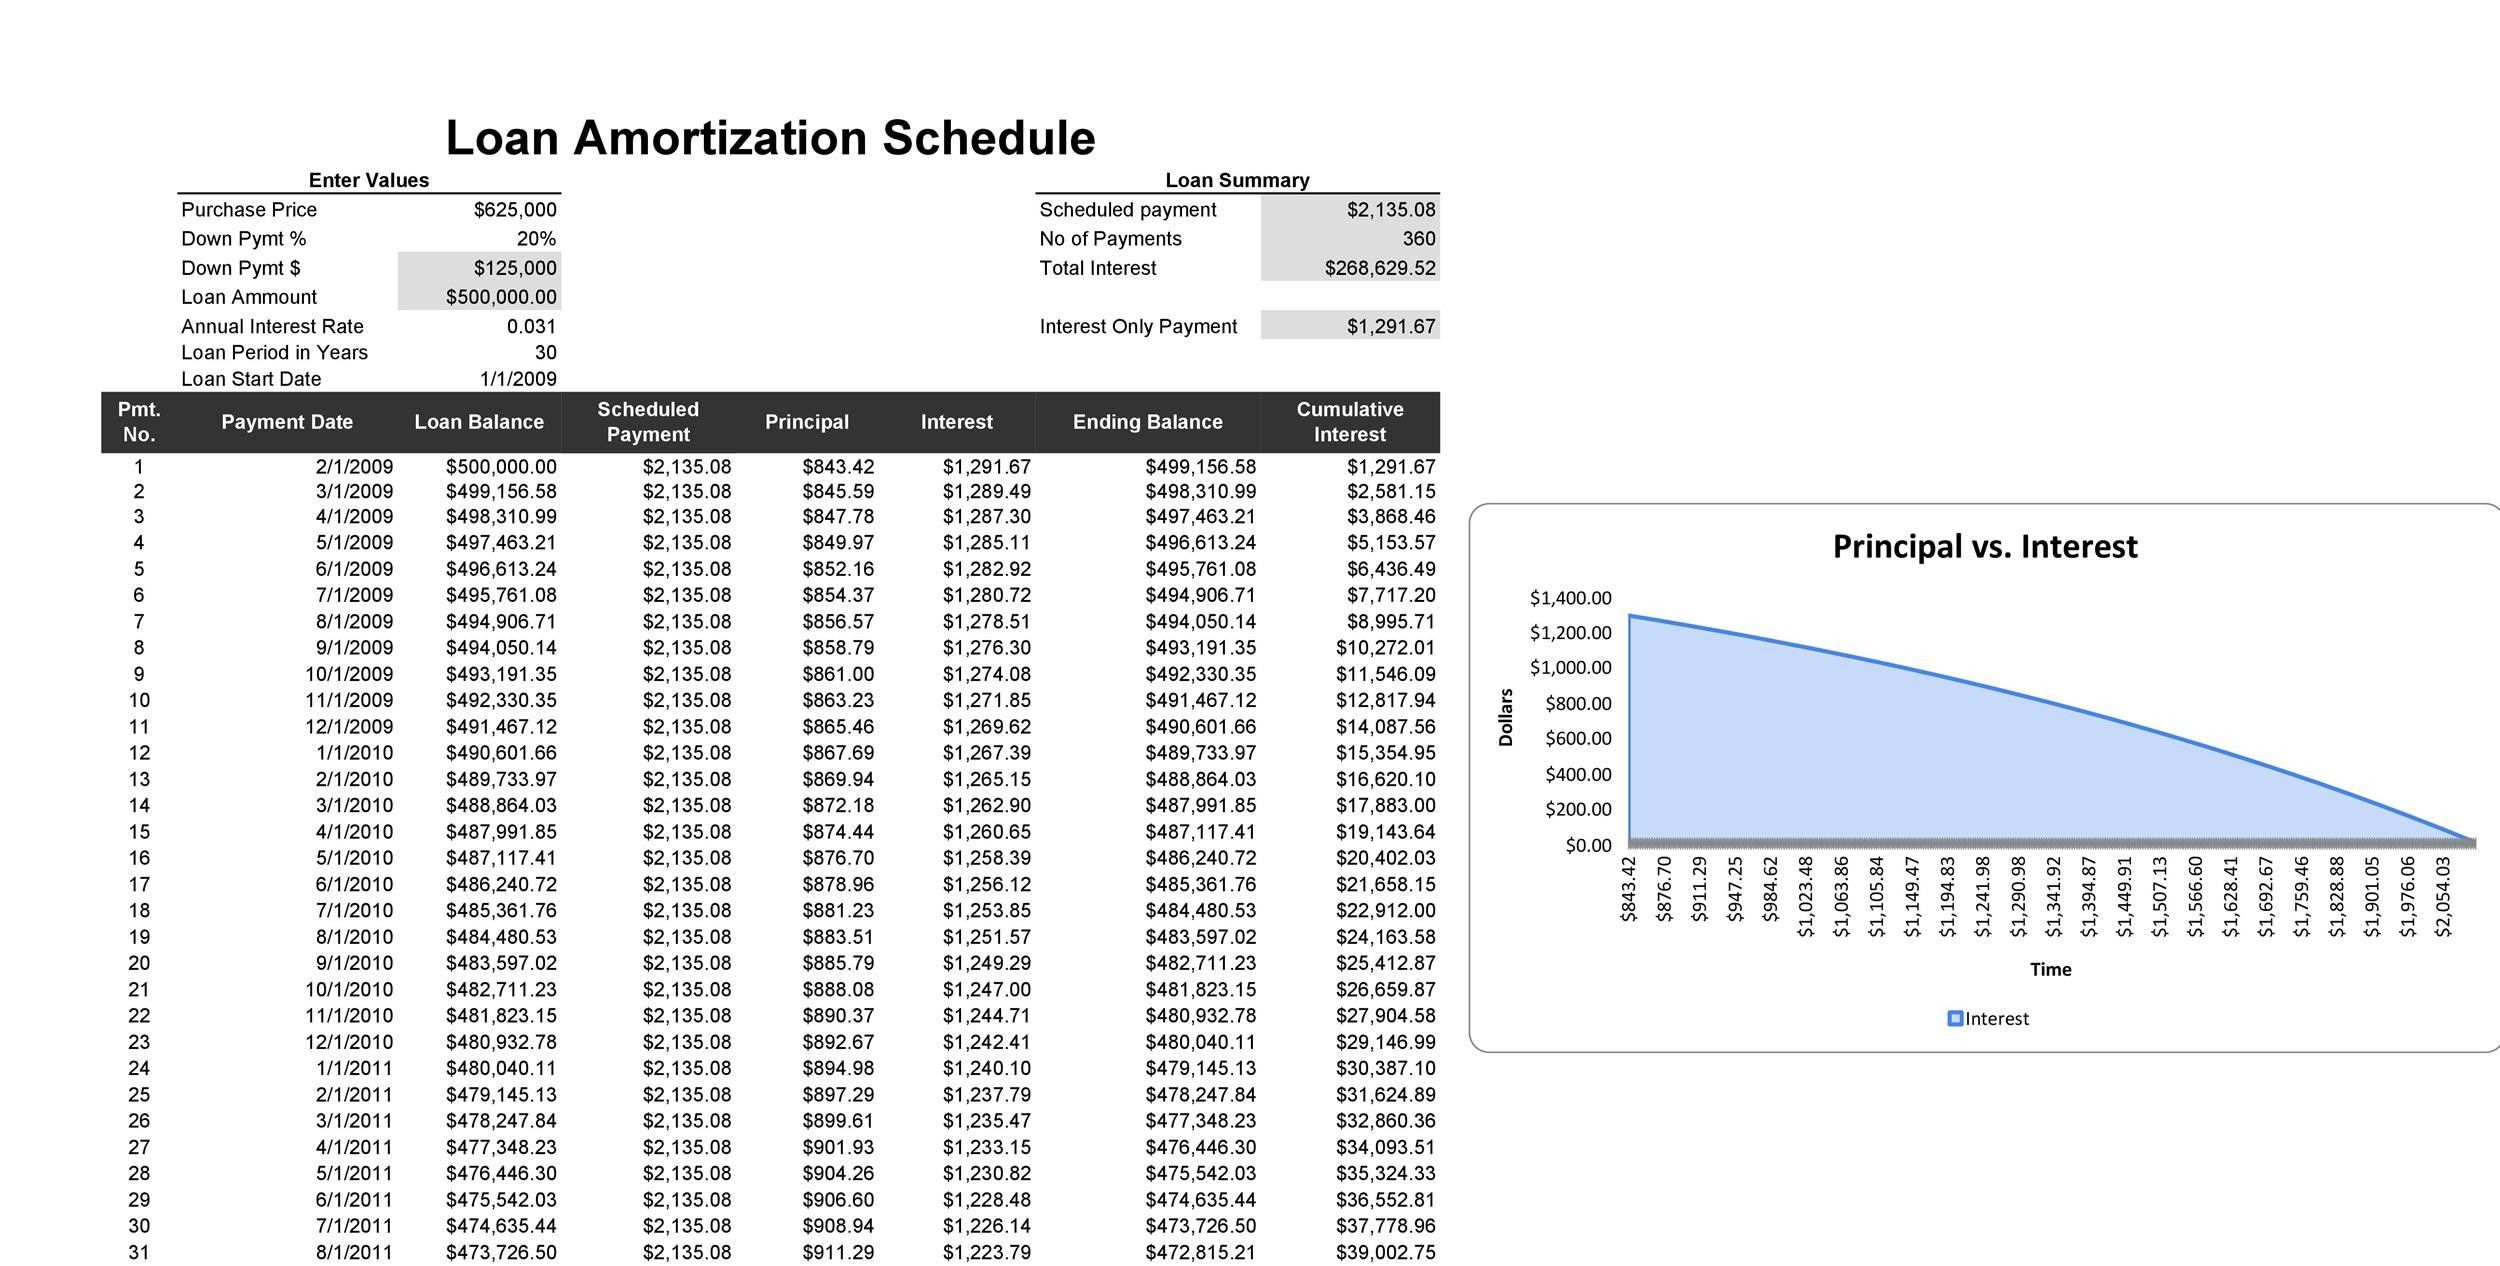 Amortization Schedule For Student Loans 2 Lessons That Will Teach You All You Need To Know A Amortization Schedule Cleaning Schedule Templates Excel Templates